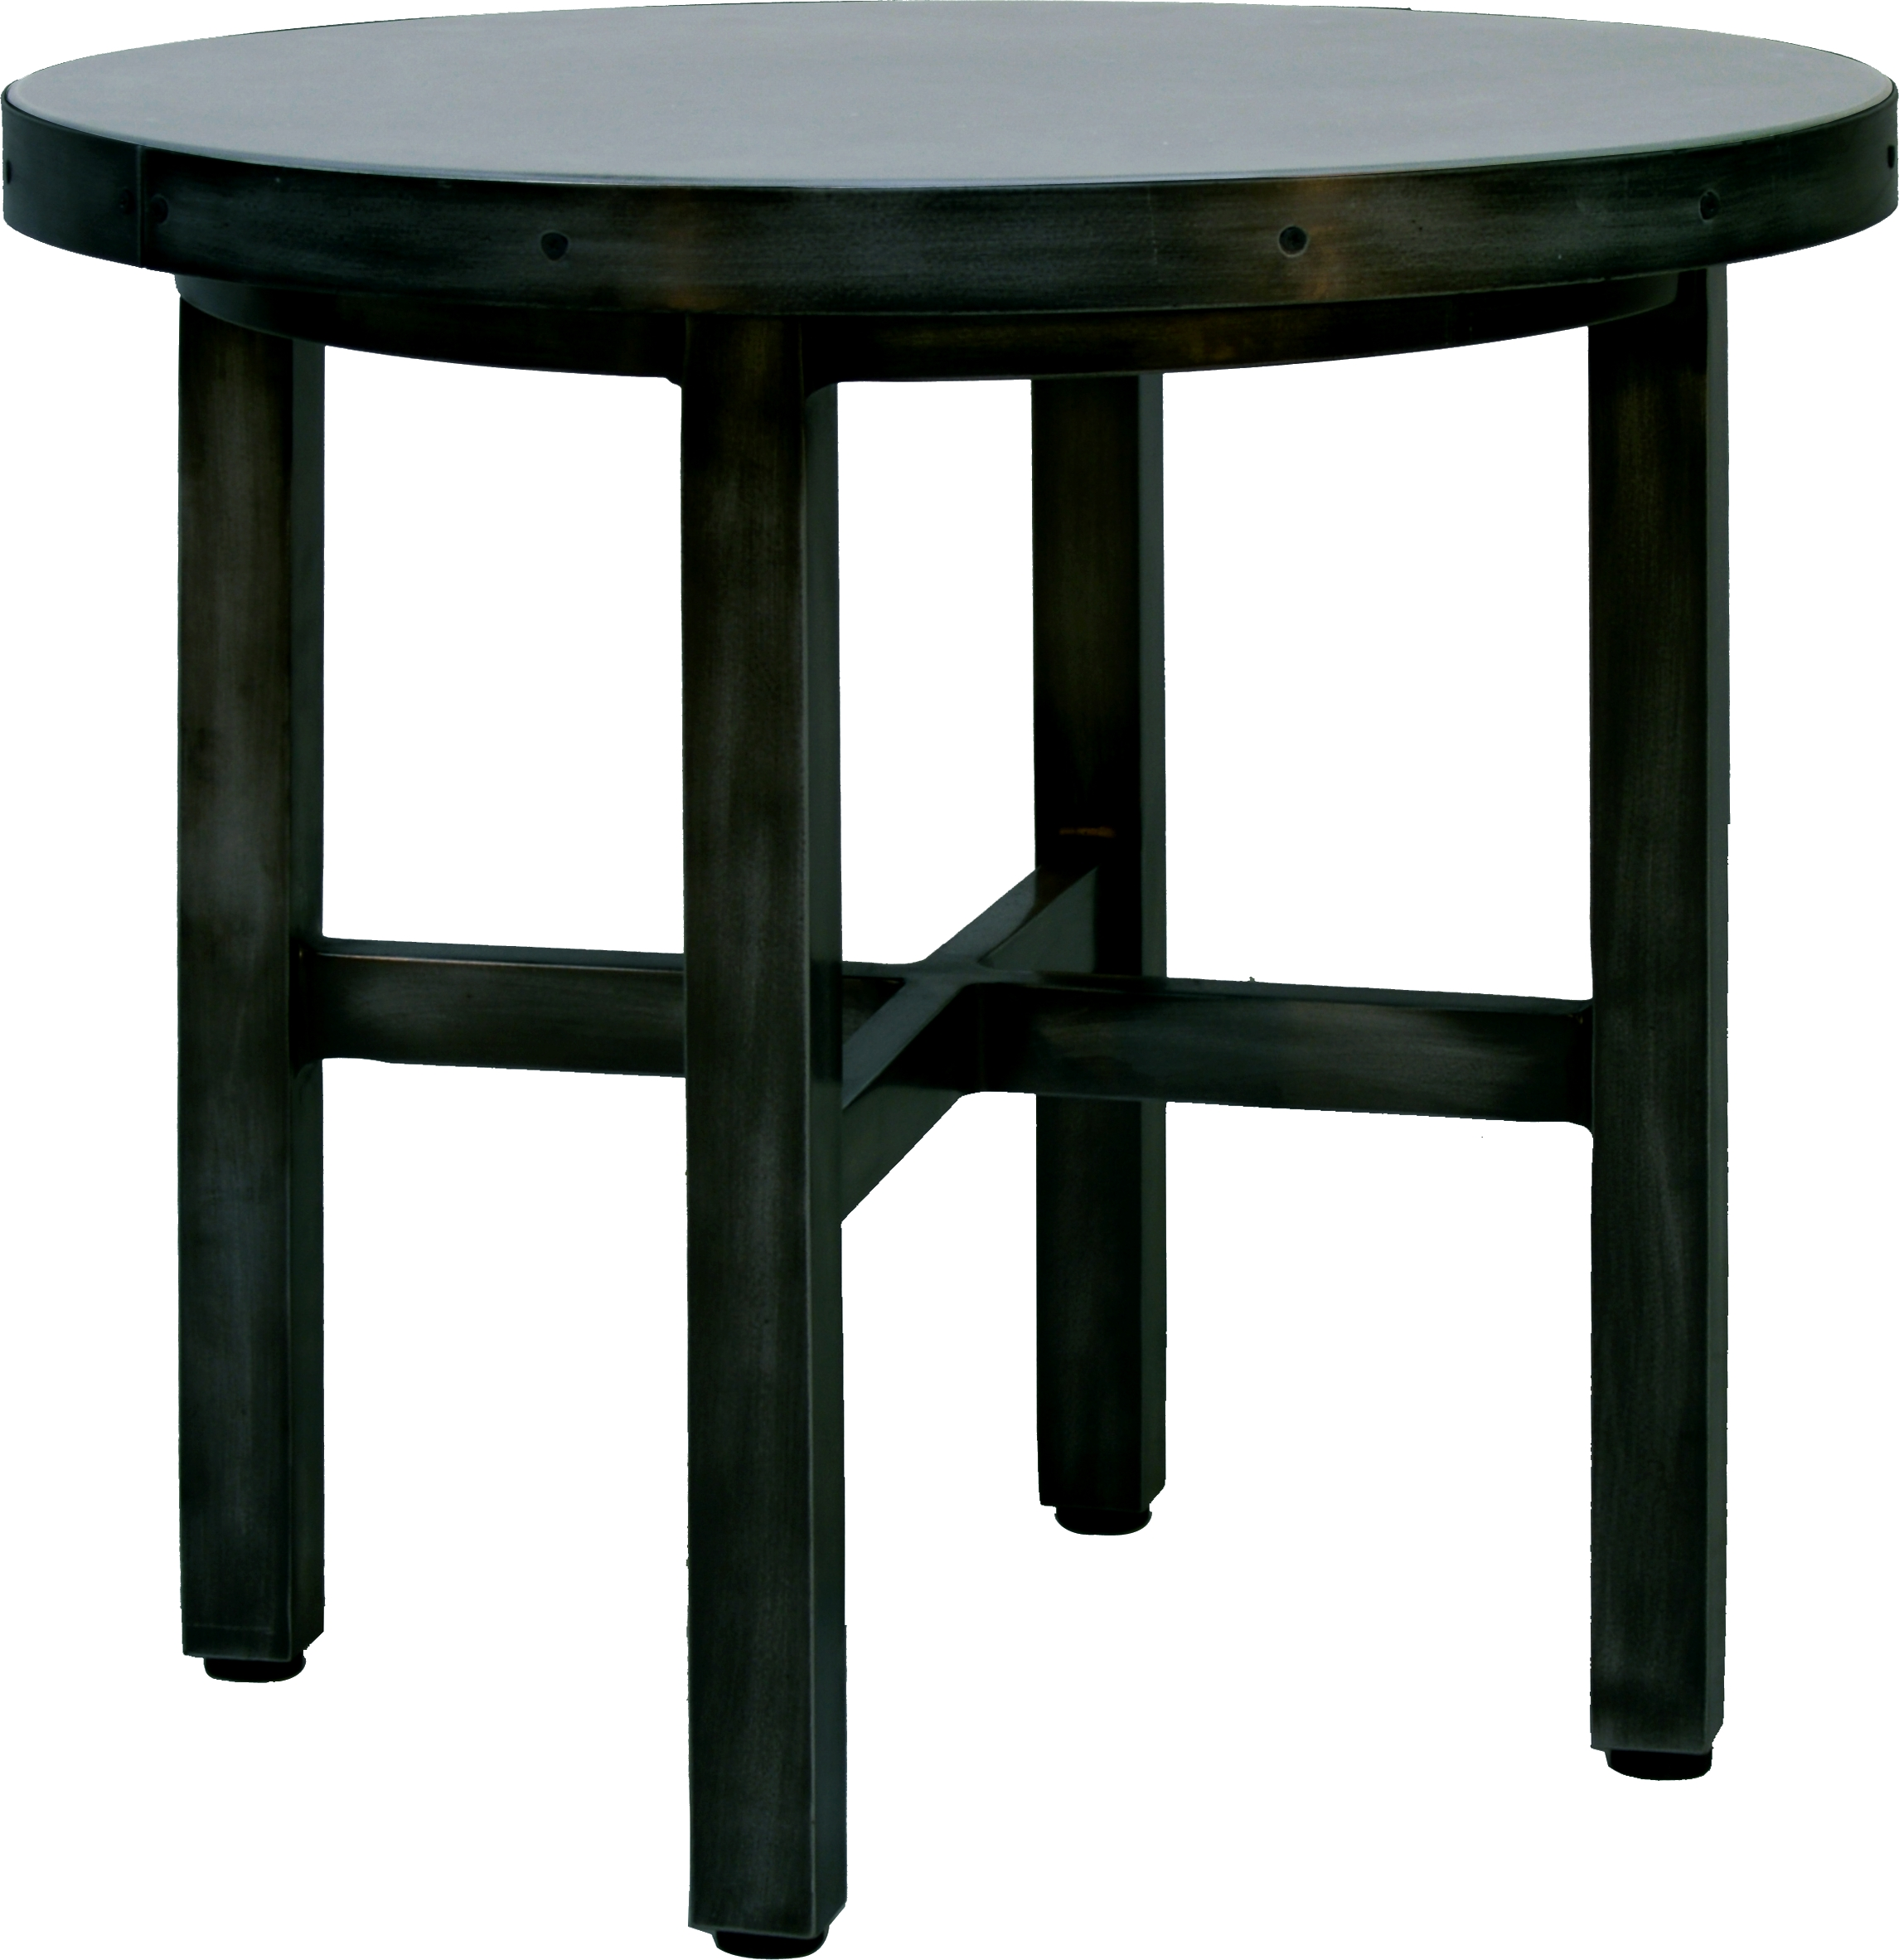 "ANB-24R 24"" Round End Table BASES   24"" x 24"" x 17"""